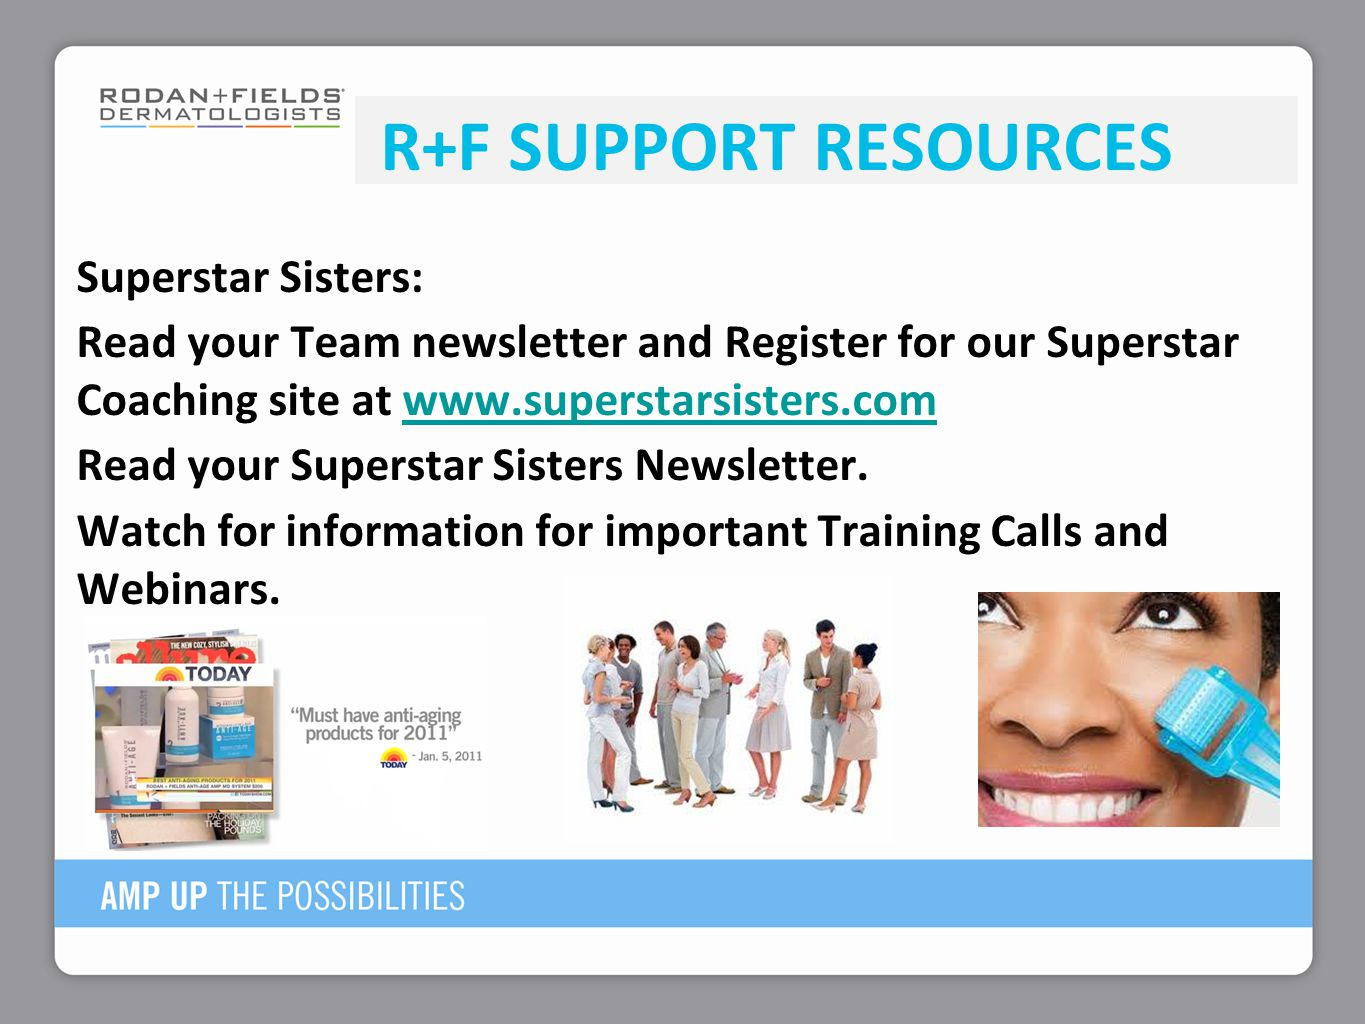 R+F Support Resources